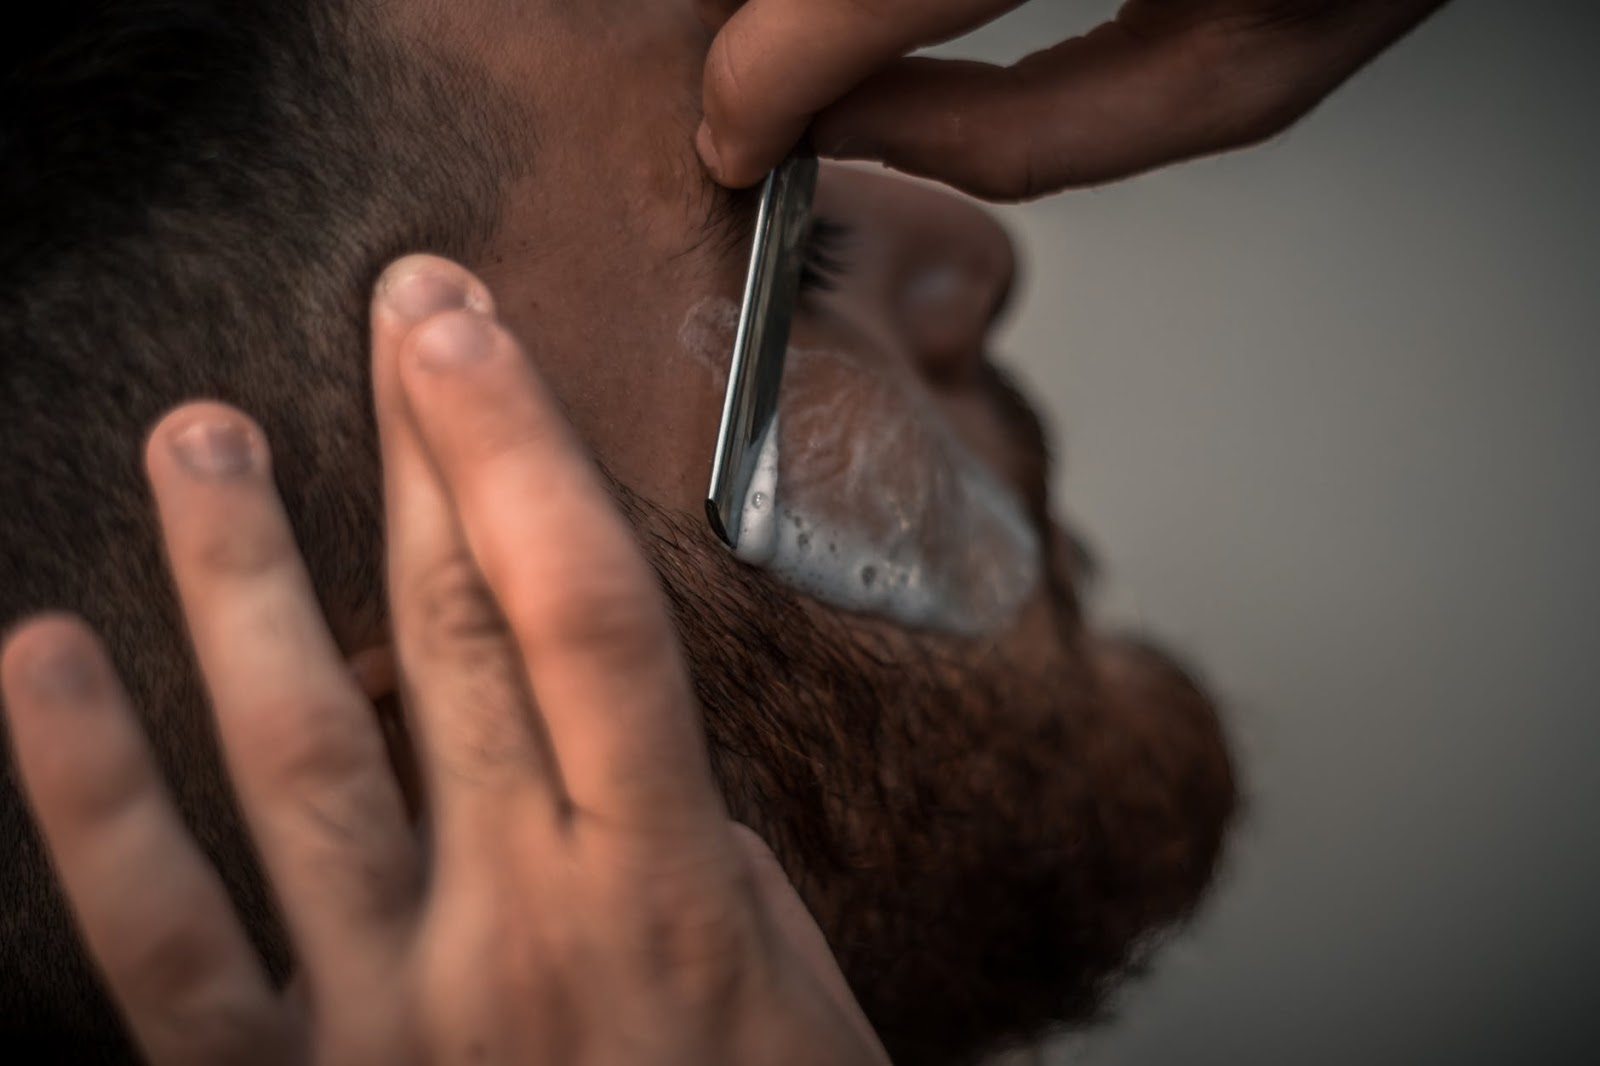 a man having a close cut shave to take care of their skin